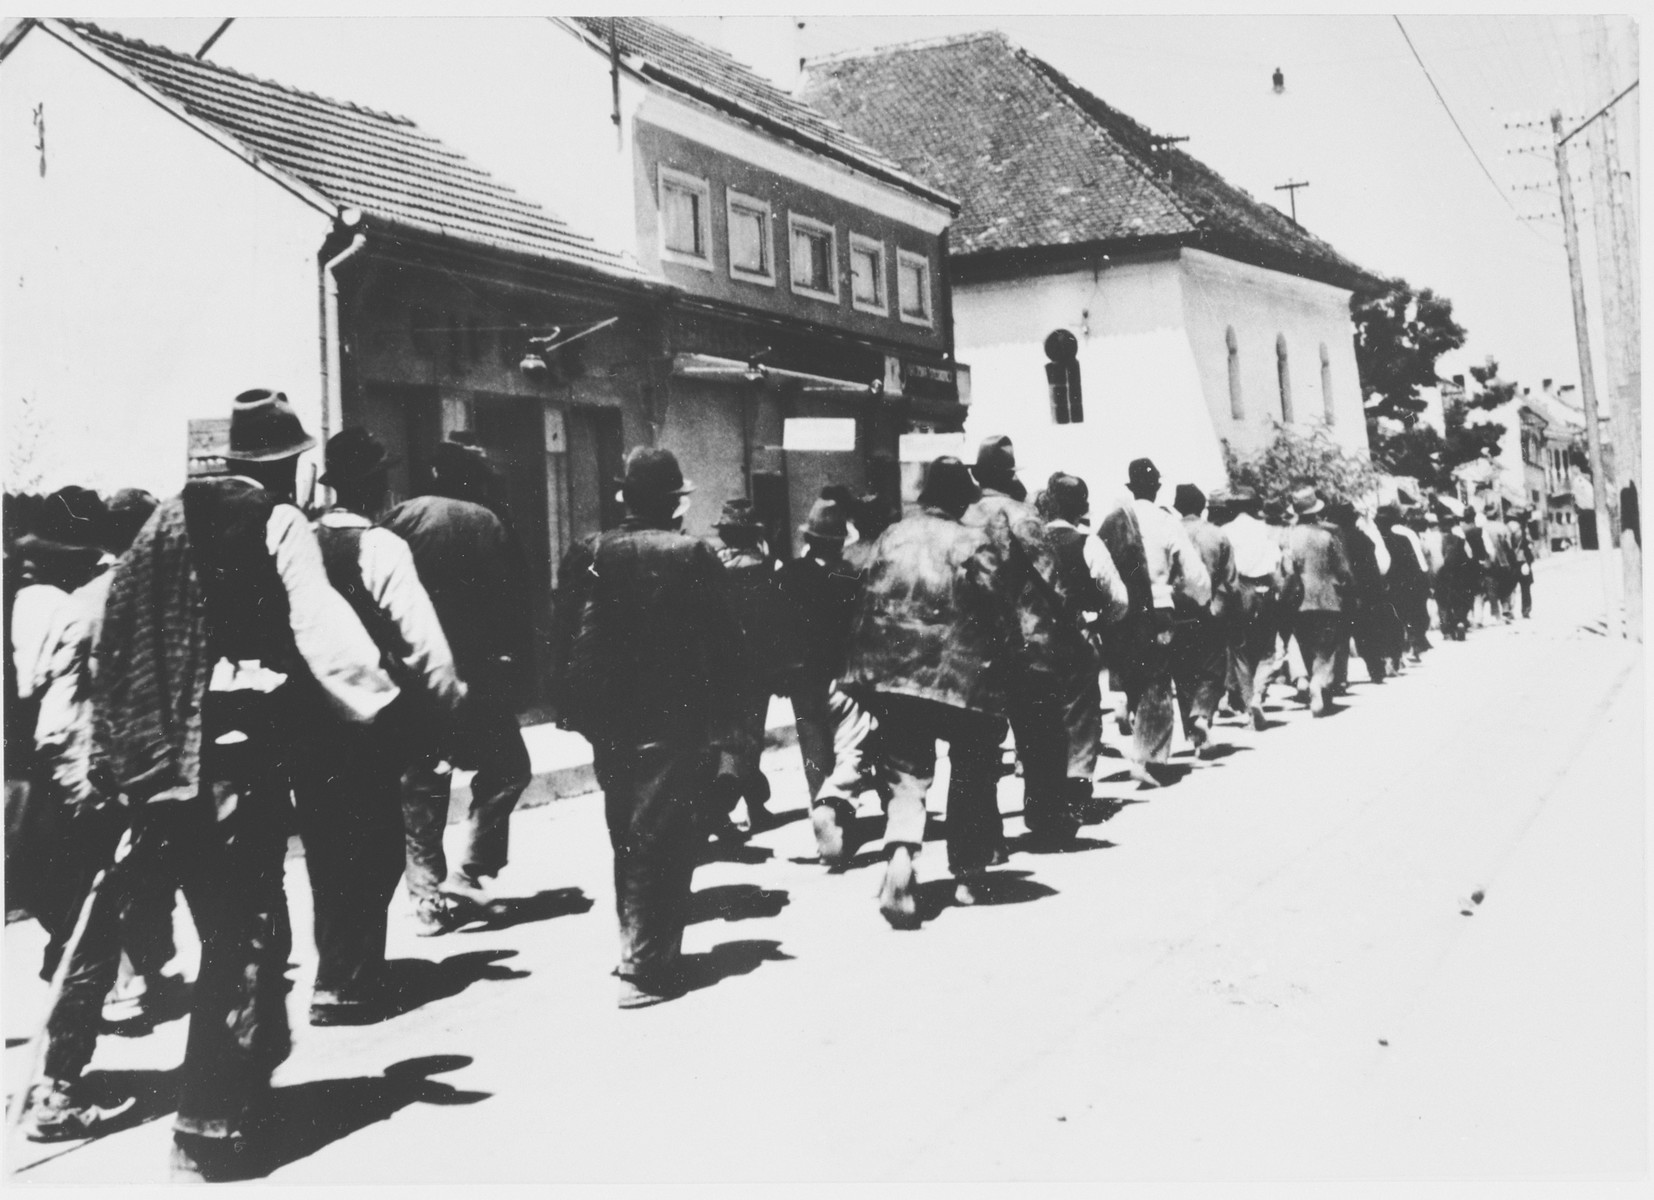 Serbian villagers from the Kozara region who have been rounded-up for deportation, march in a column through the streets of Prijedor.